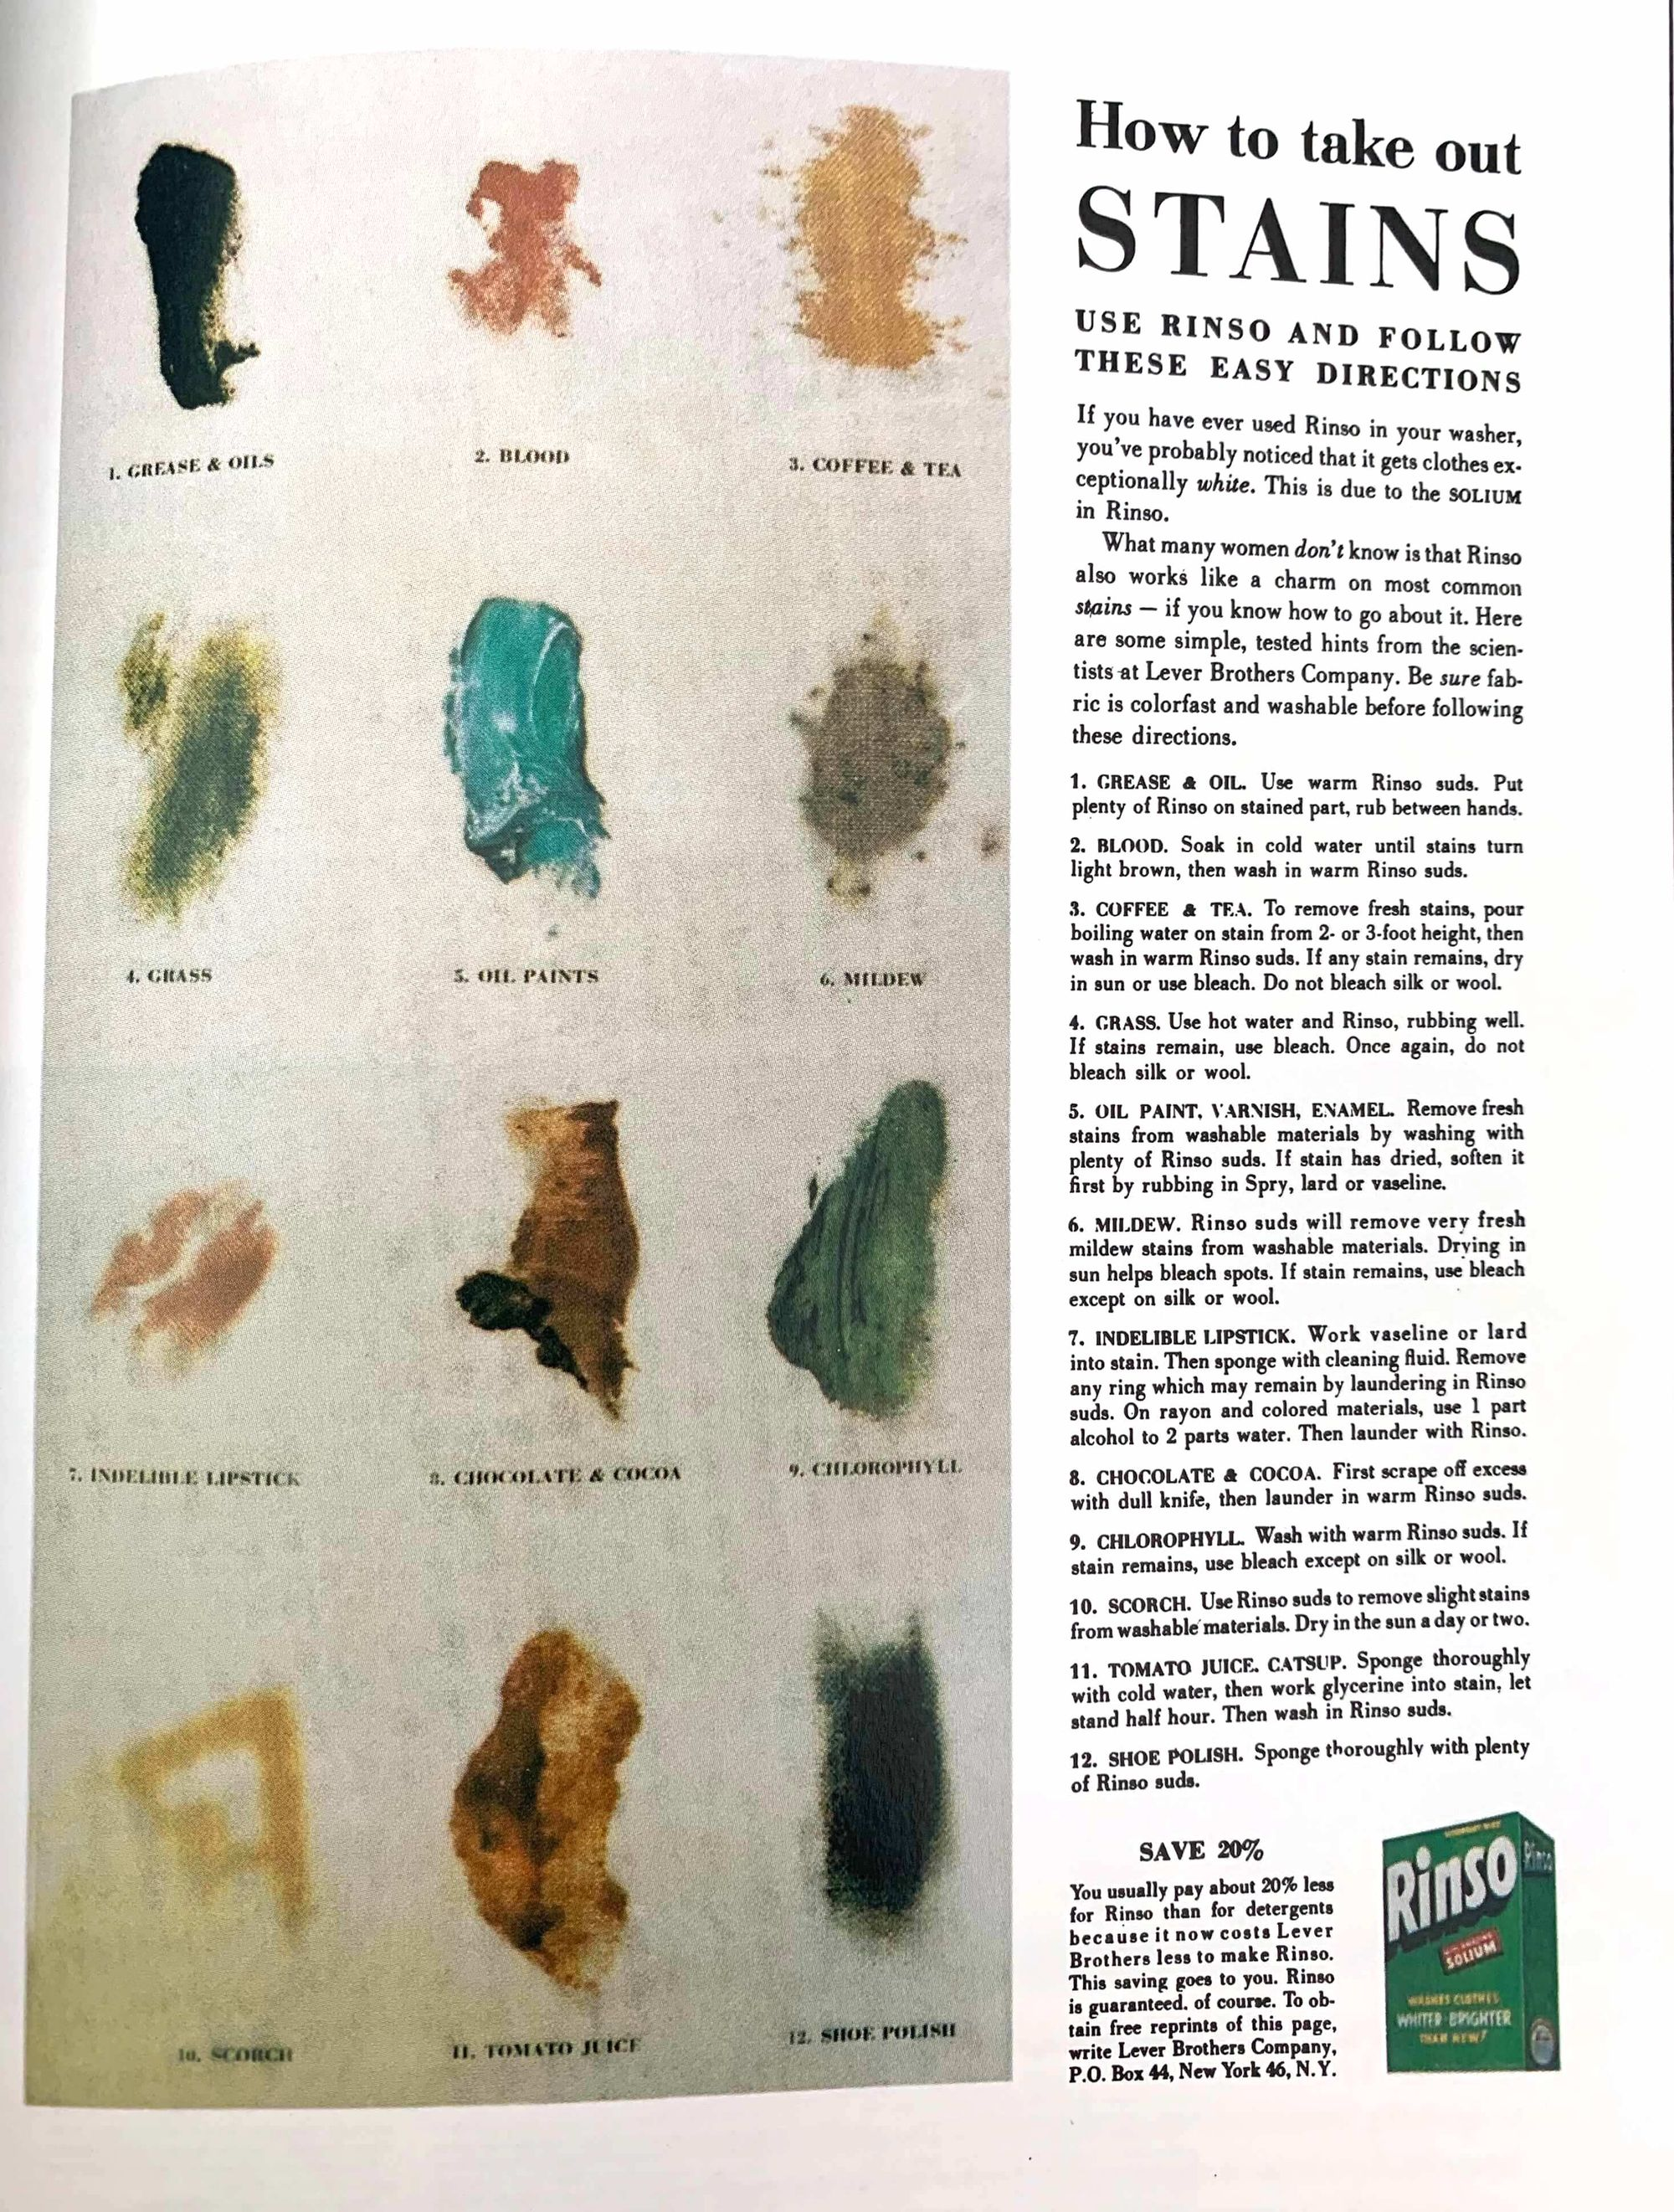 Rinso's How to Take Out Stains Ad by Ogilvy